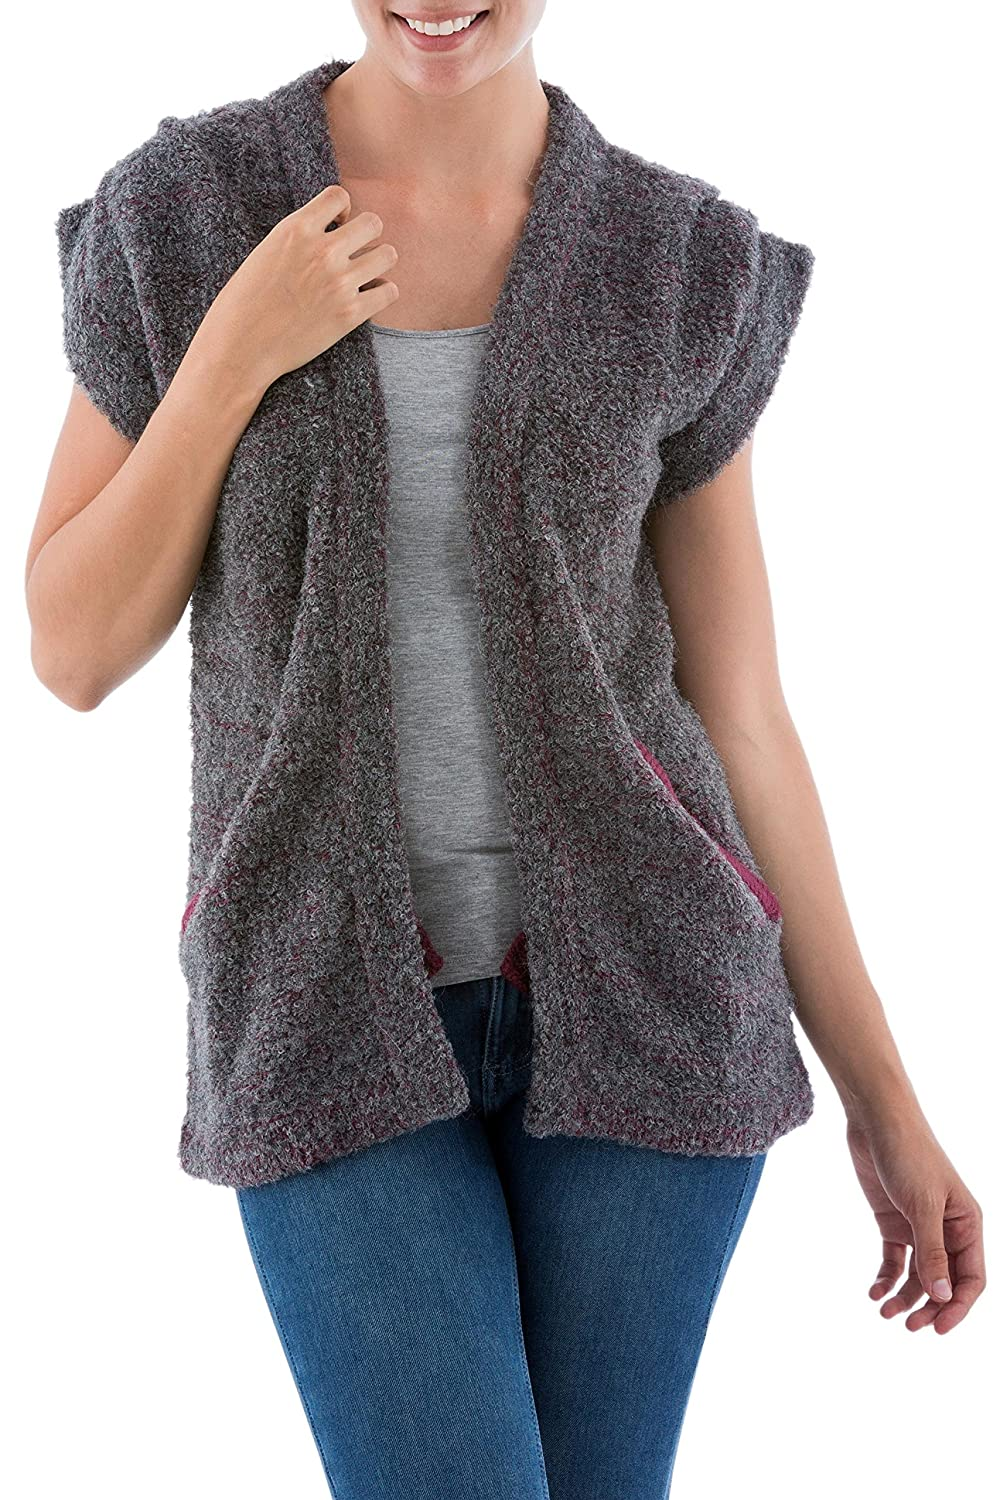 NOVICA Grey Alpaca Blend Cardigan Vest, 'Burgundy Grey Boucle'